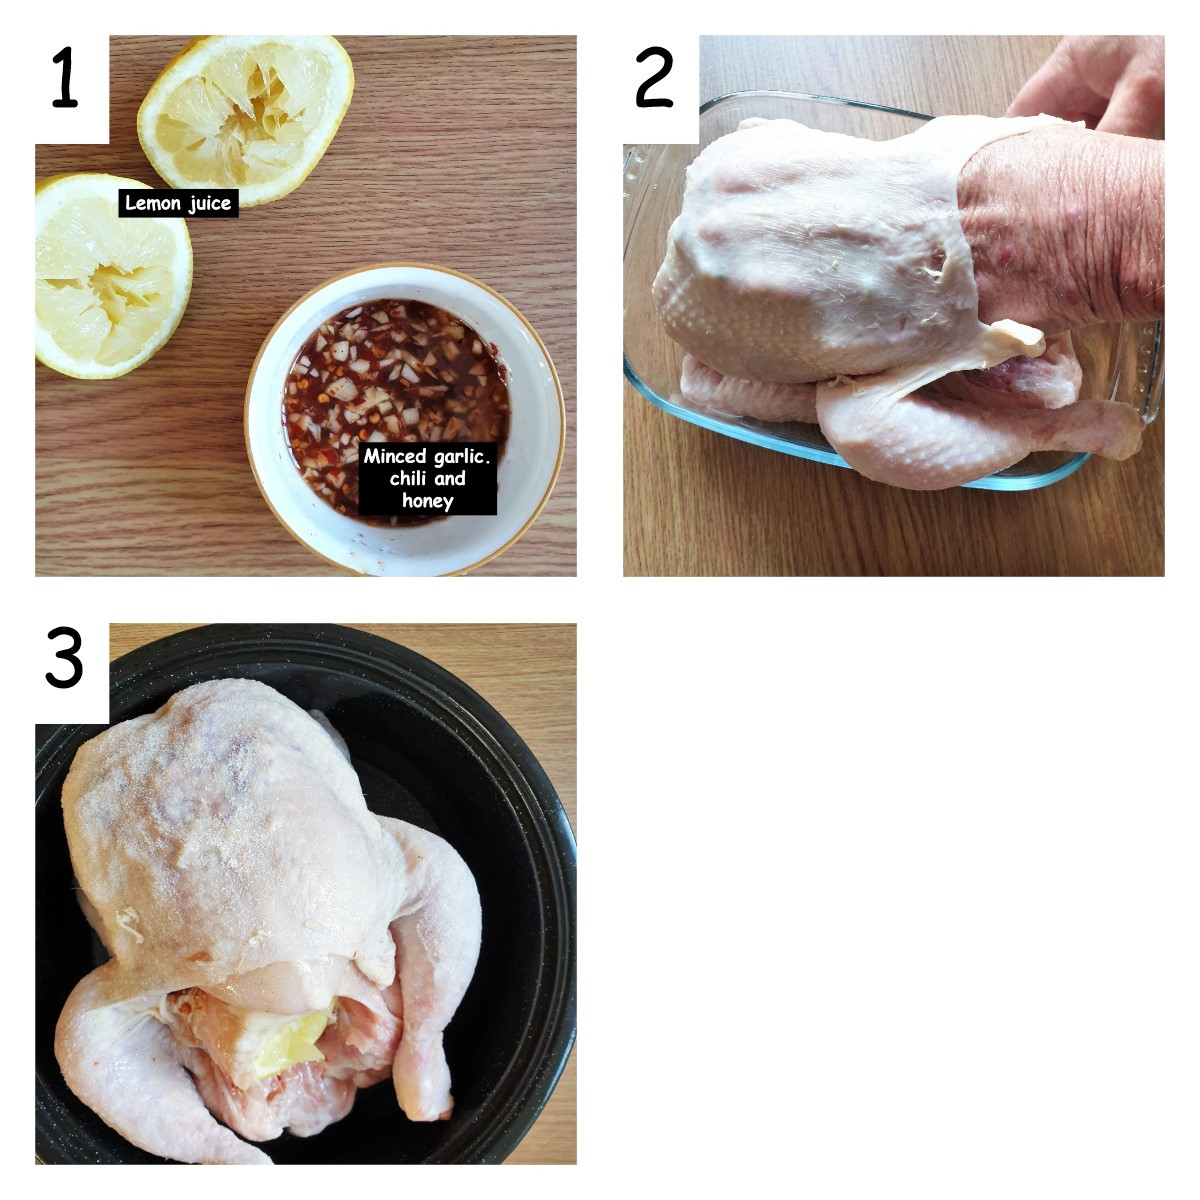 Collage of 3 images showing marinade being rubbed beneath the skin of the chicken.